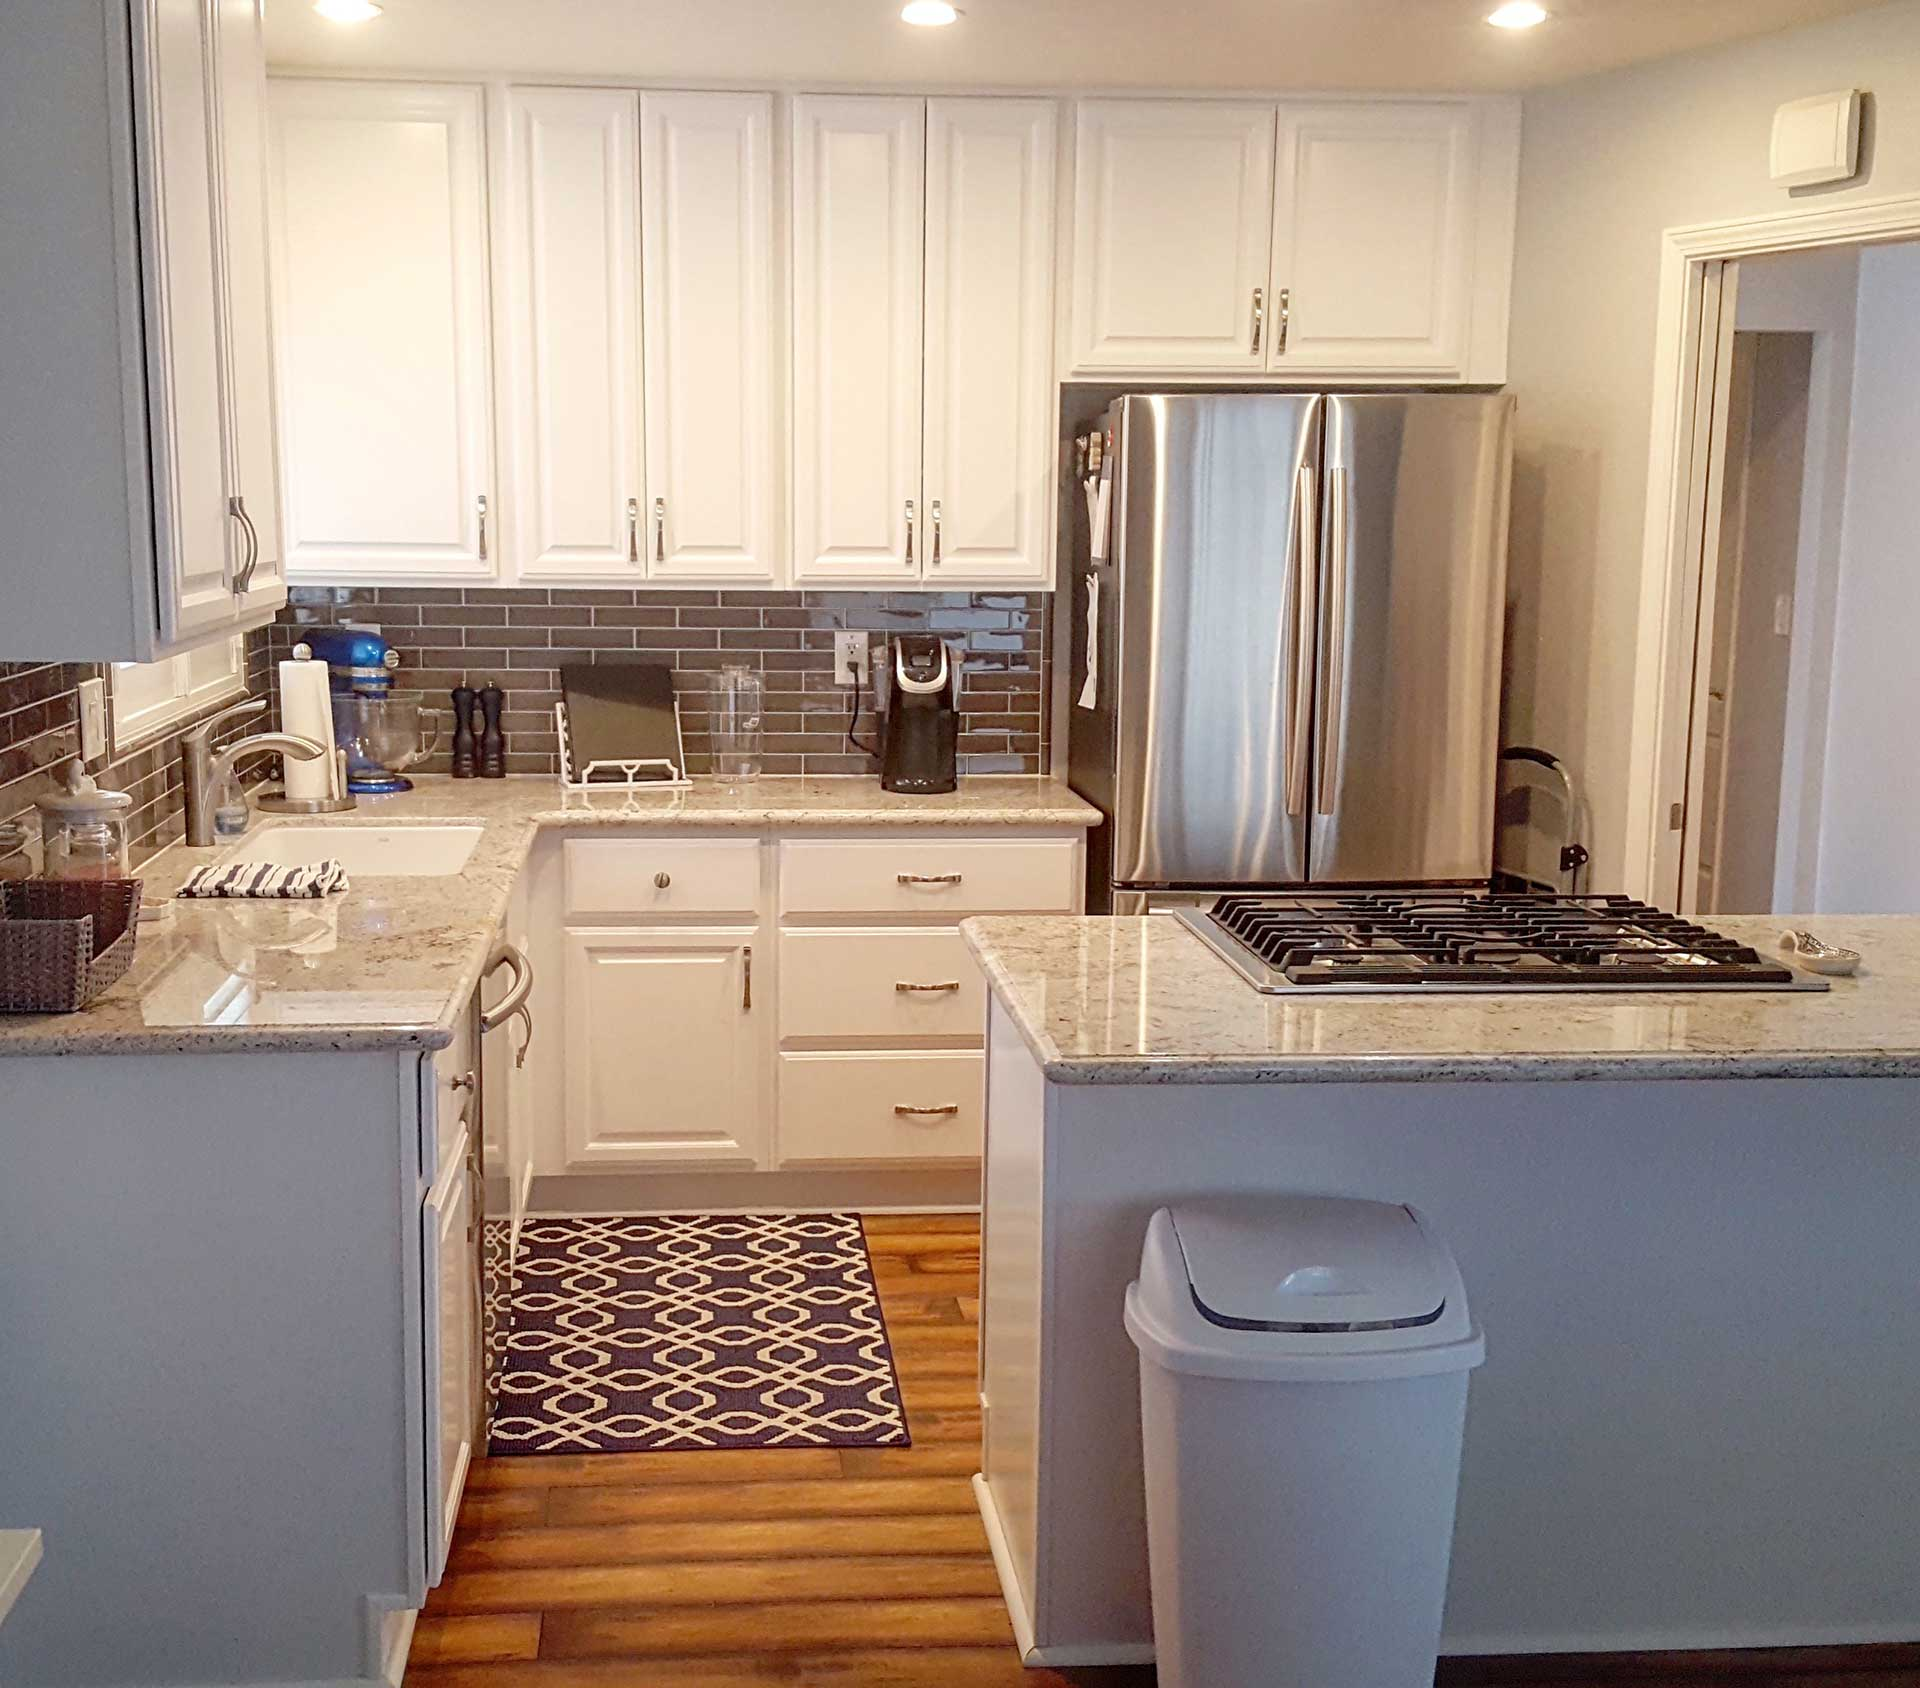 Cabinets Remodeling Talk To A Pro About Kitchen Cabinets Remodeling Free Estimates